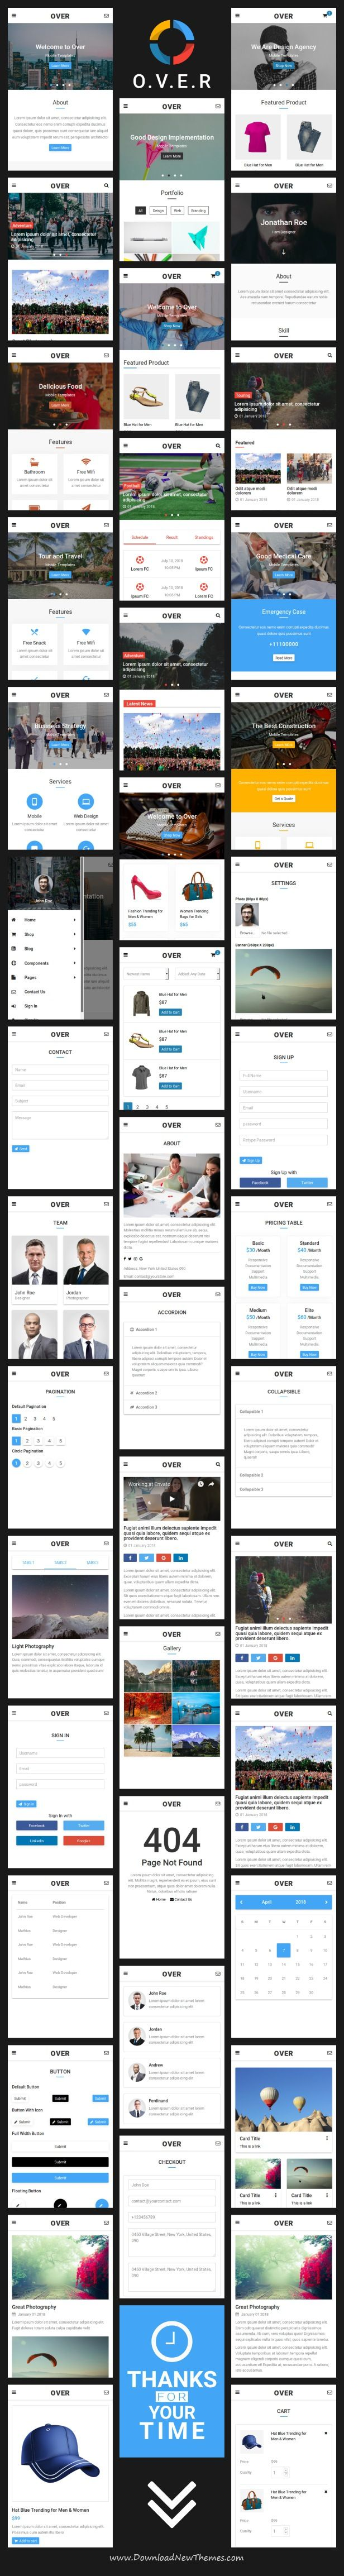 Over - Multi-Concept Web App UI Kit Mobile Template | Template and ...